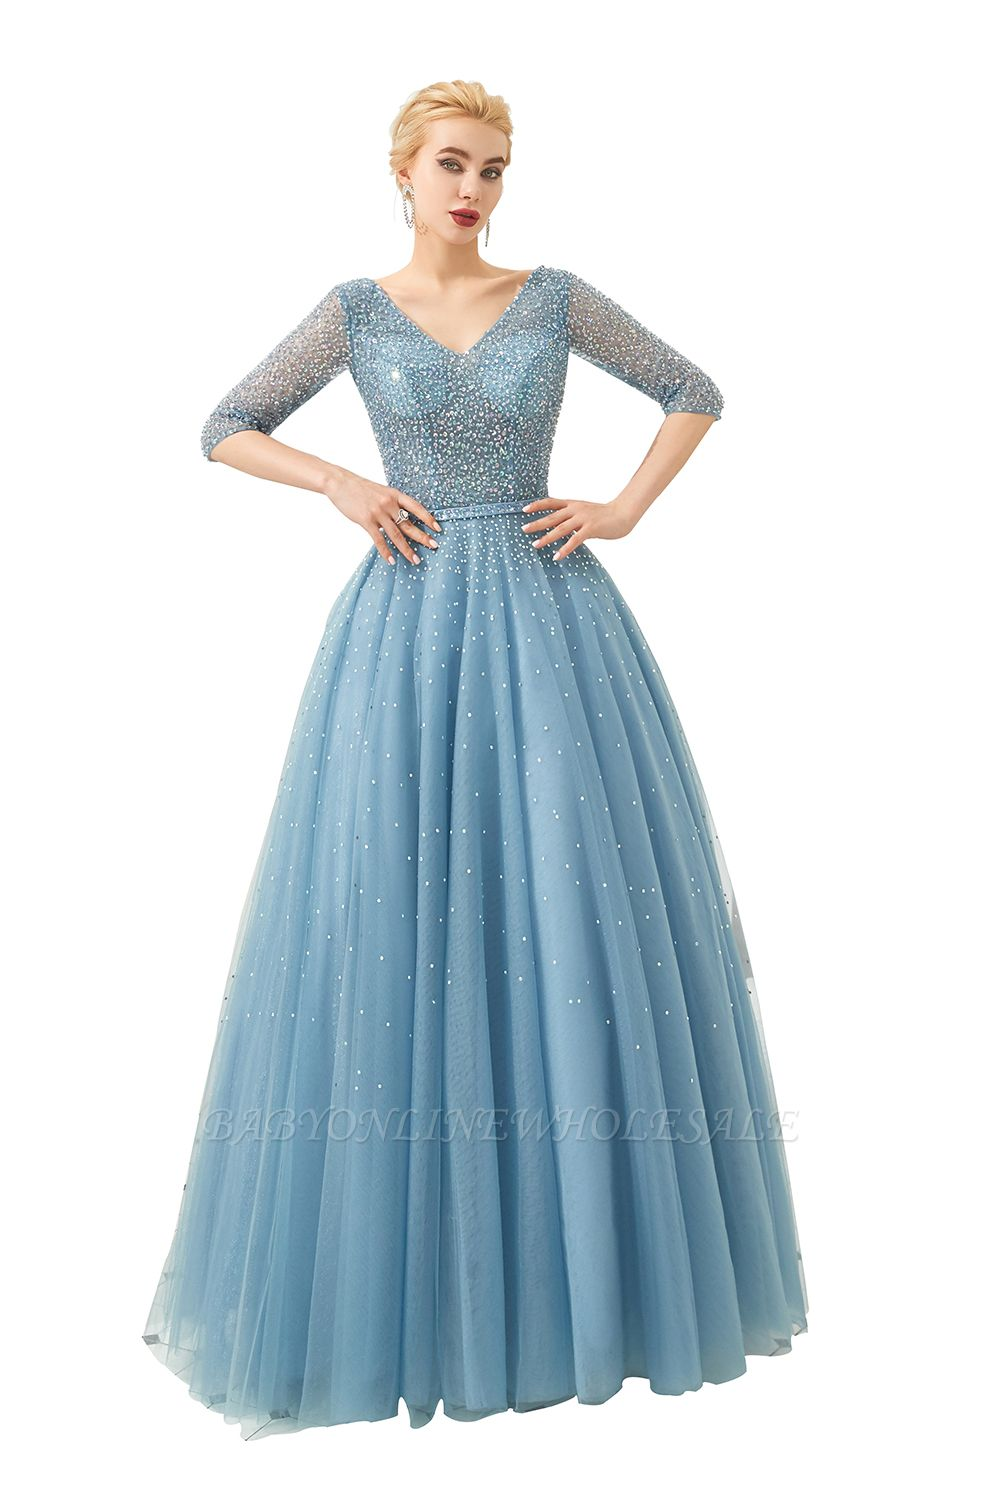 Harold | Discount V-neck Fully beaded 2/3 sleeves A-line Tulle Long Prom Dress